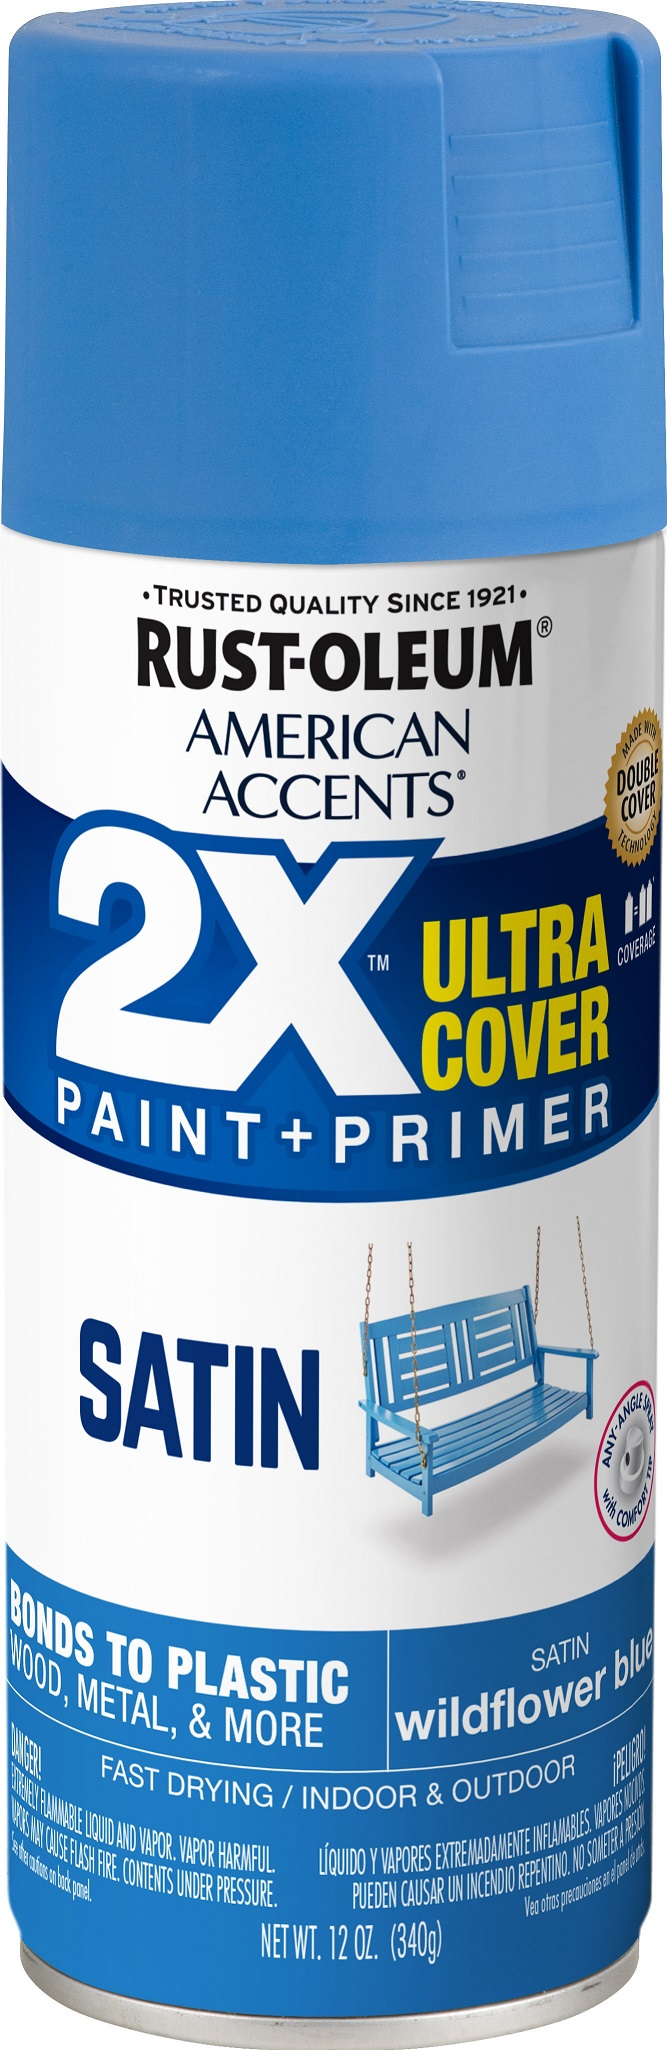 (3 Pack) Rust-Oleum American Accents Ultra Cover 2X Satin Wildflower Spray Paint and Primer in 1, 12 oz